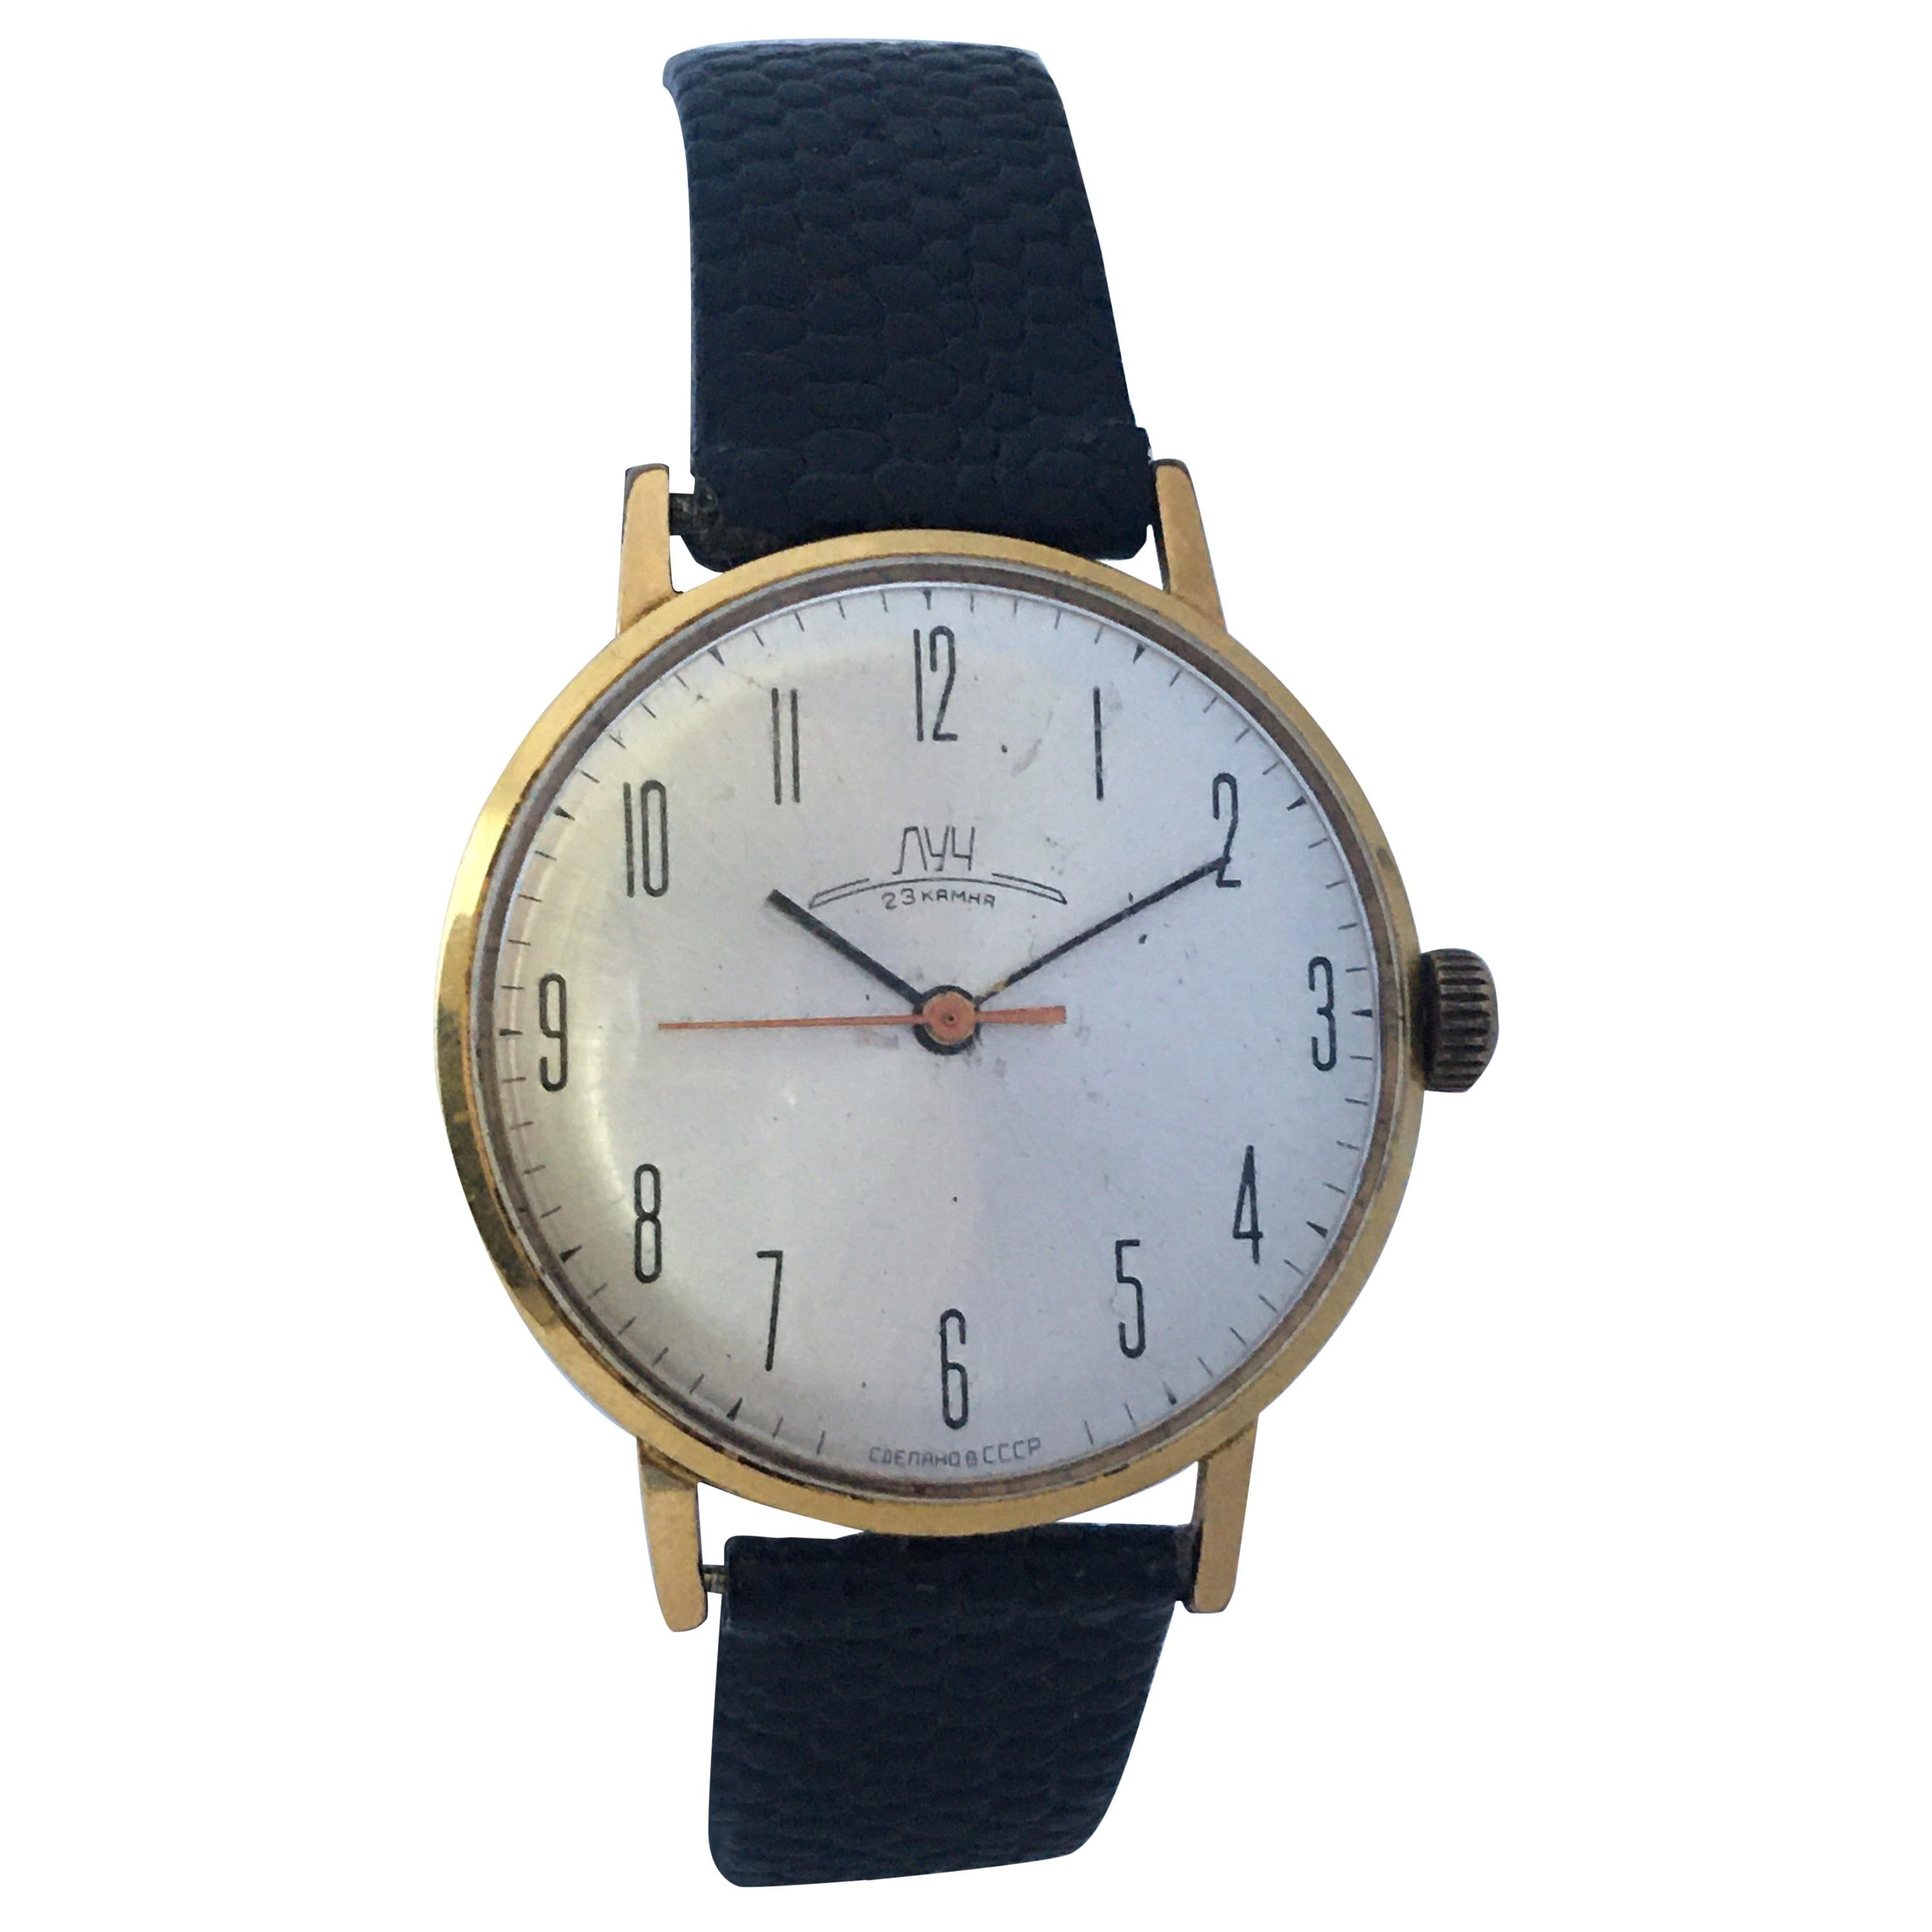 Vintage 1970s Gold-Plated Mechanical Watch